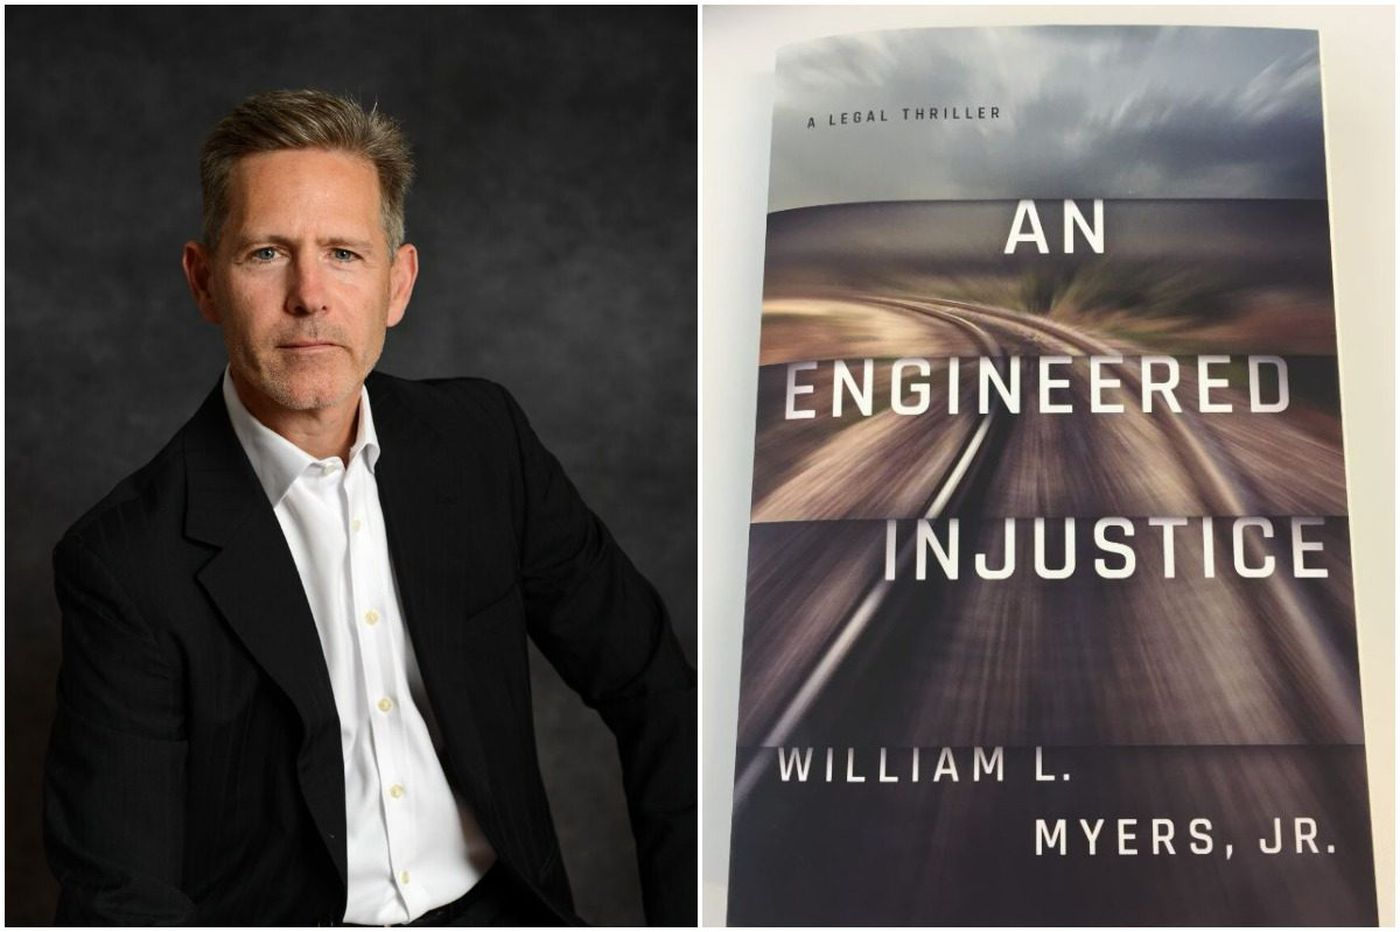 Philly lawyer writes legal thriller loosely based on 2015 Amtrak crash